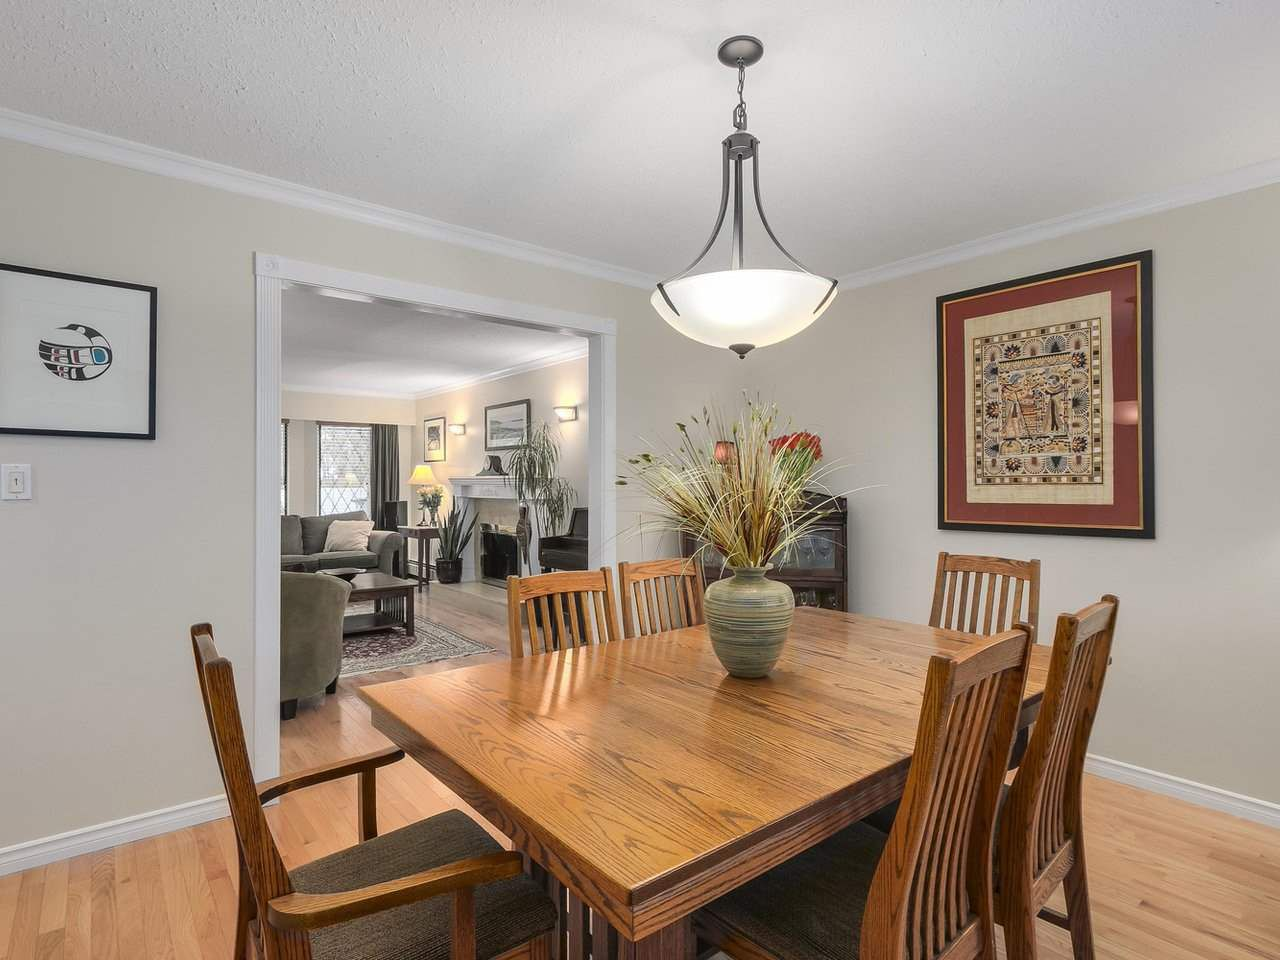 Photo 5: Photos: 887 KELVIN Street in Coquitlam: Harbour Chines House for sale : MLS®# R2240068